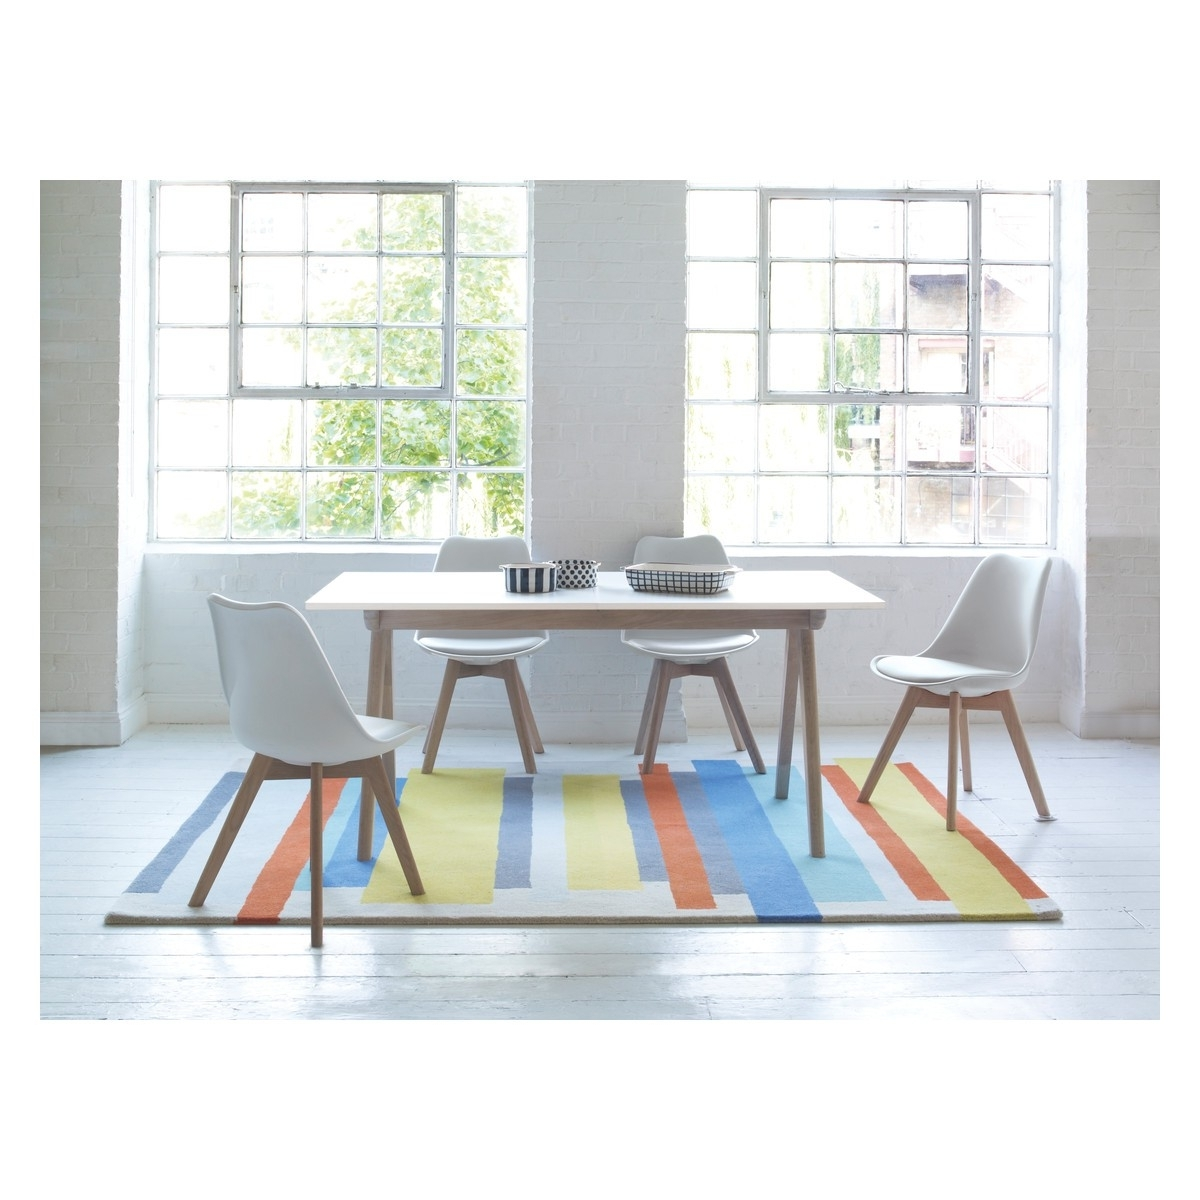 White Glass Dining Tables And Chairs Throughout Popular Jerry Dining Set With White Extending Table And 4 White Chairs (View 7 of 25)